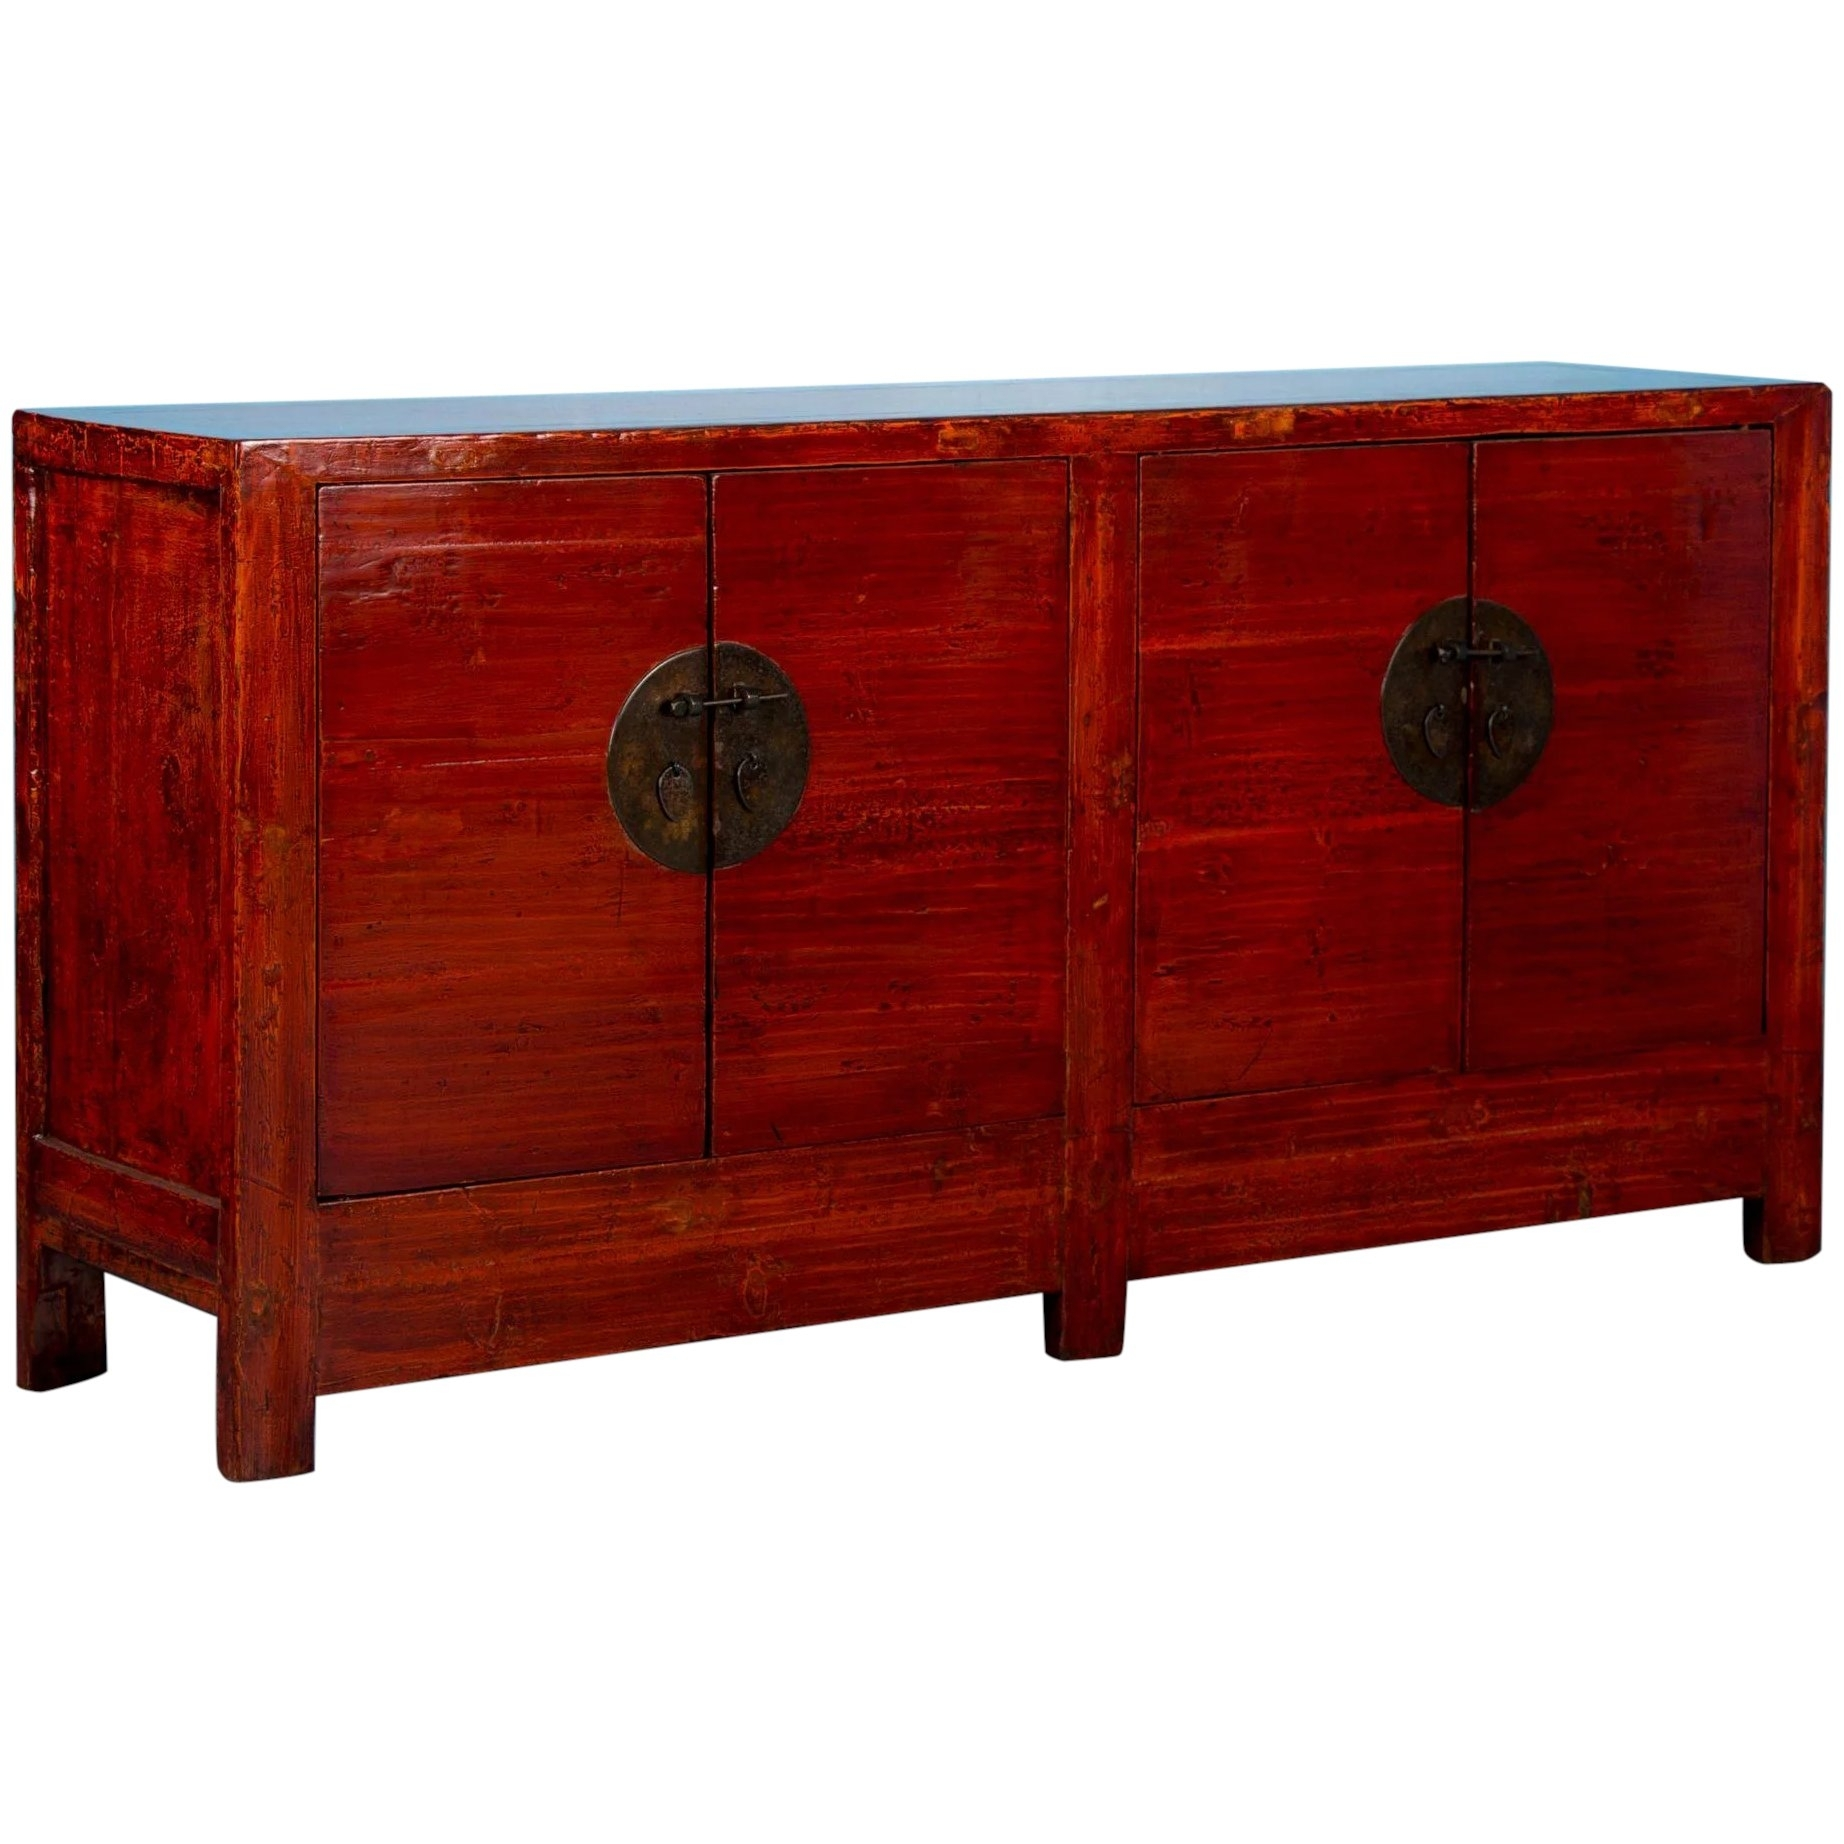 Sideboards | Scandinavian Antiques | Antique Furniture For Sale regarding Vintage Finish 4-Door Sideboards (Image 24 of 30)